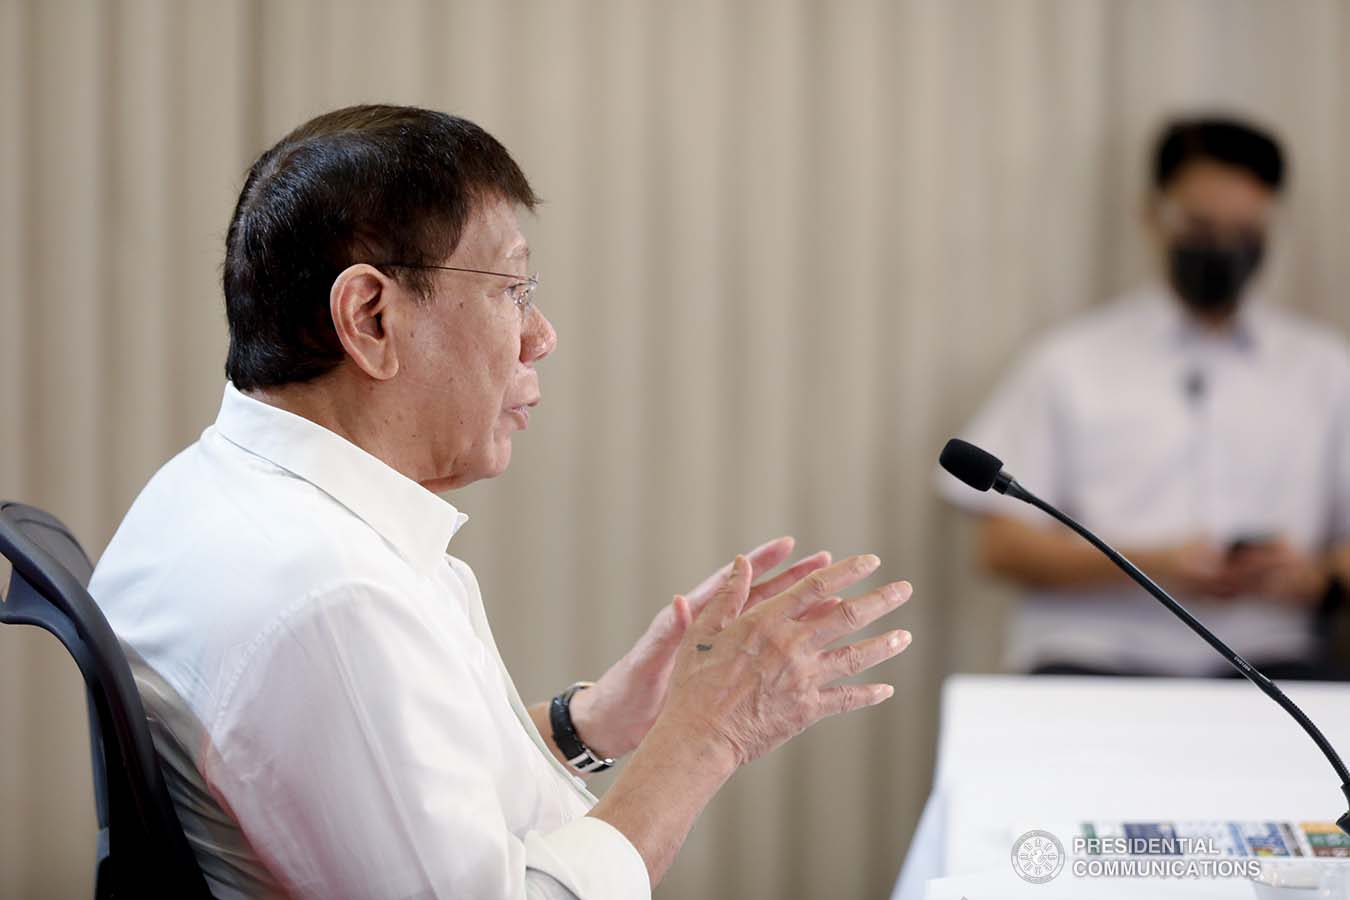 President Rodrigo Roa Duterte talks to the people after holding a meeting with the Inter-Agency Task Force on the Emerging Infectious Diseases (IATF-EID) core members at the Arcadia Active Lifestyle Center in Matina, Davao City on September 22, 2021. SIMEON CELI/ PRESIDENTIAL PHOTO